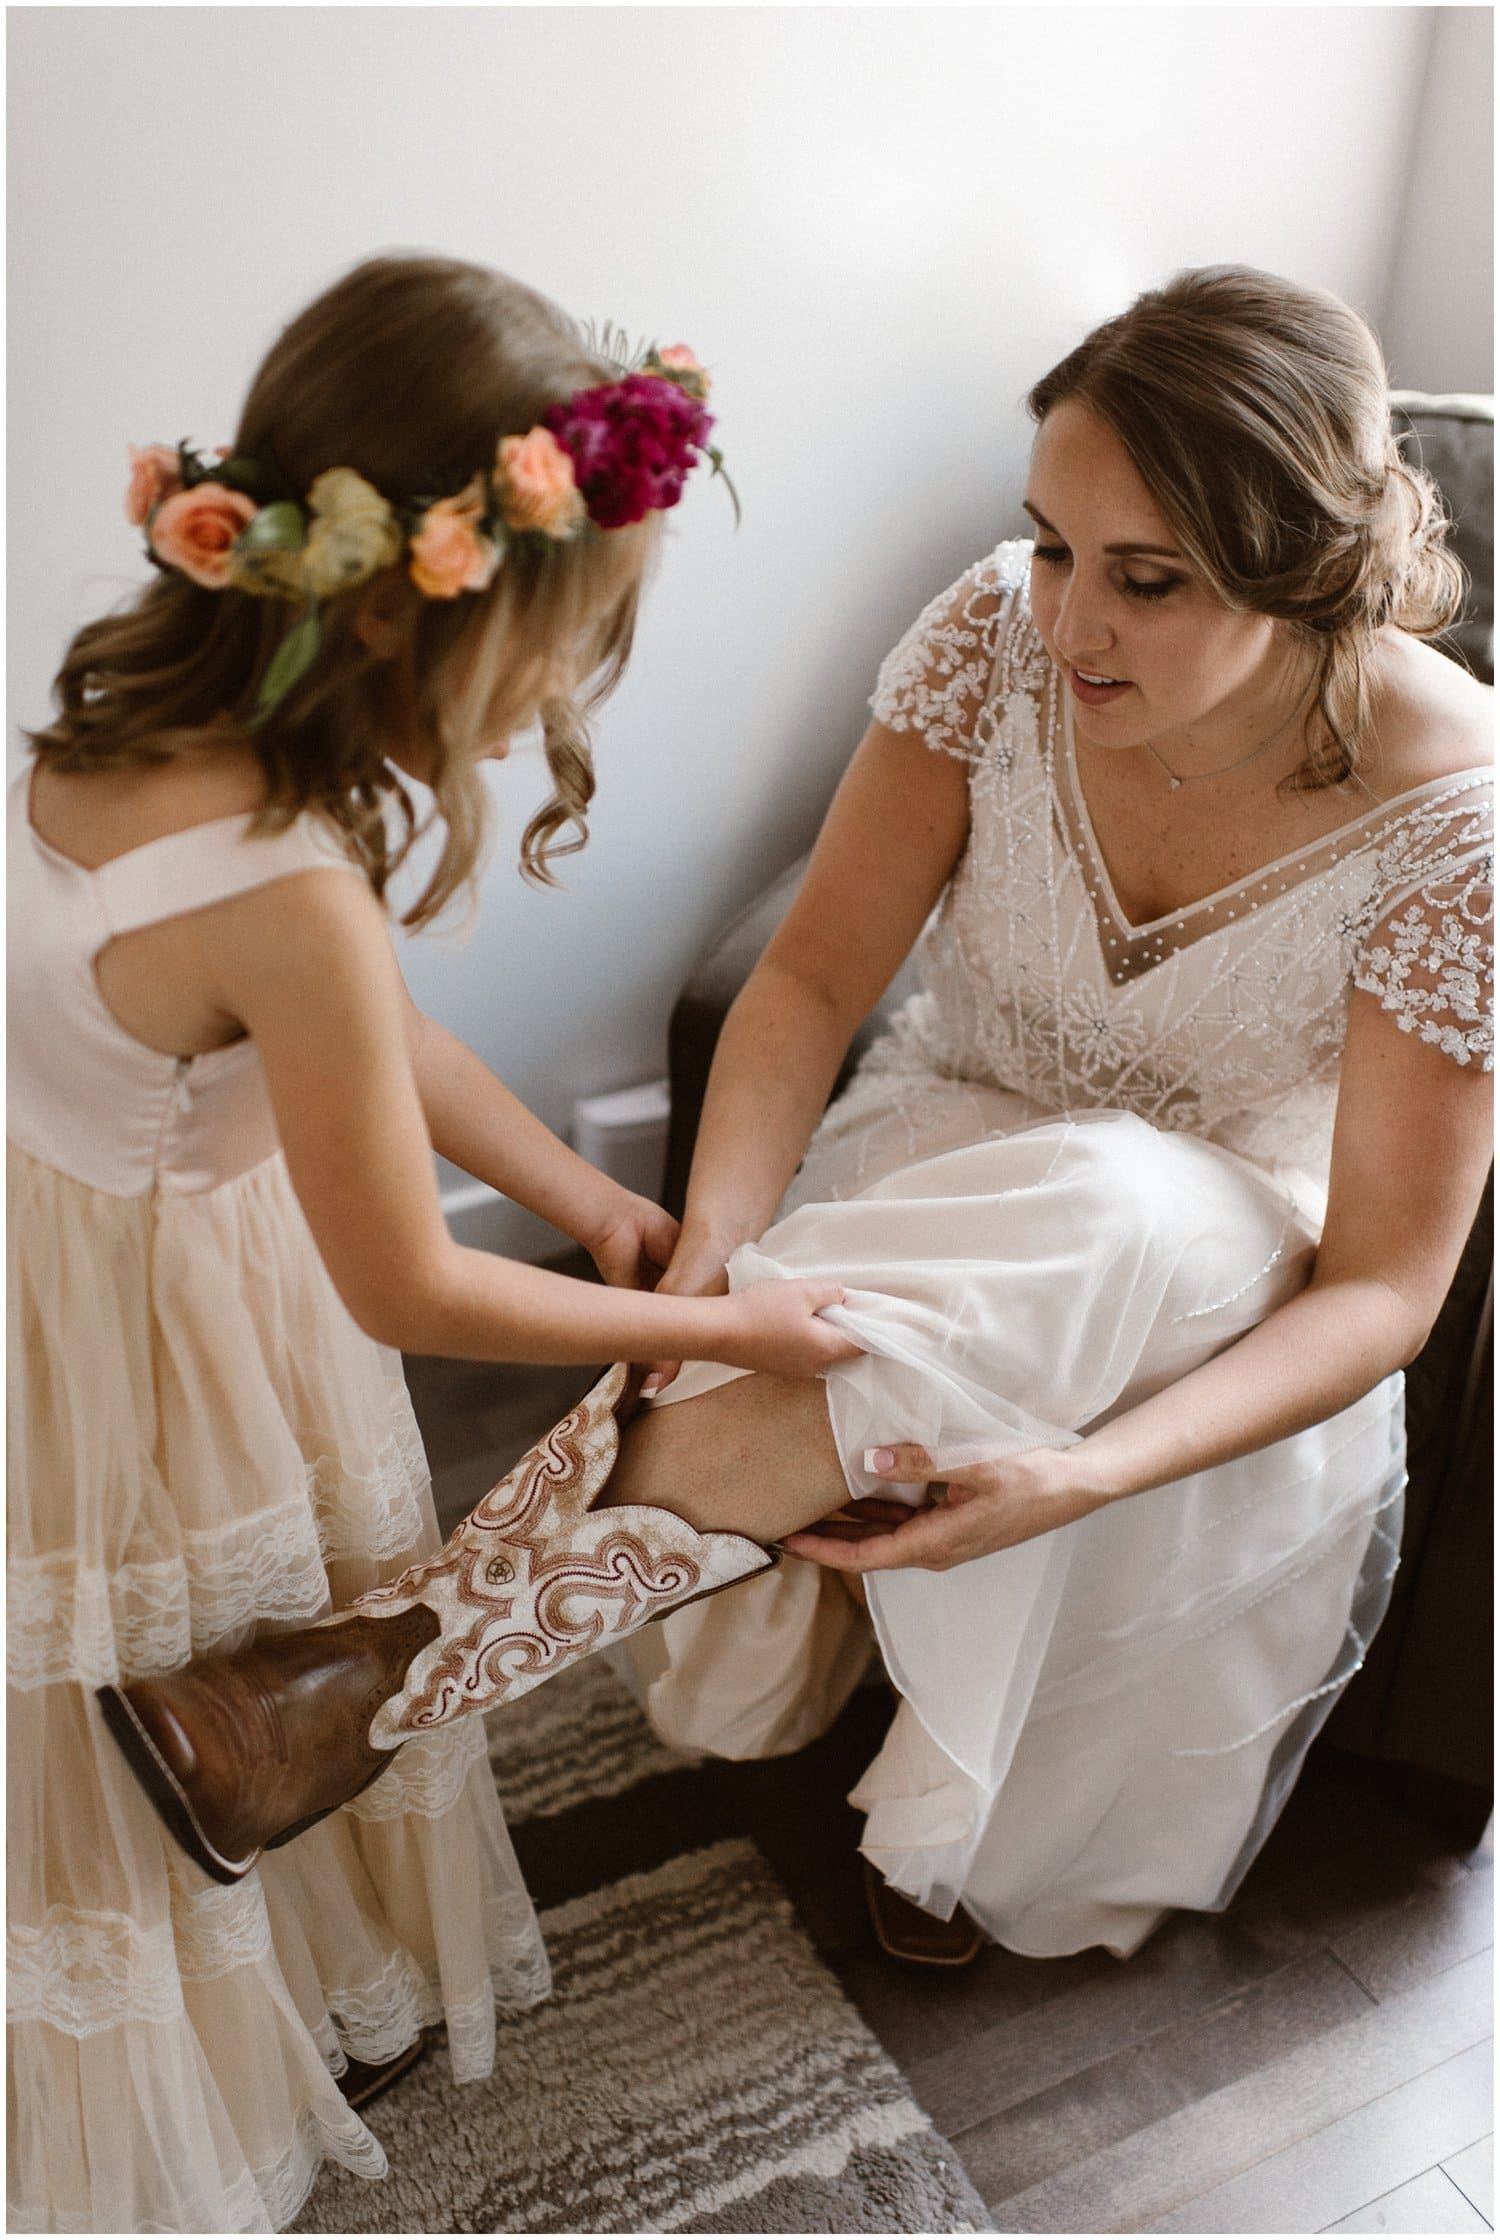 Little girl in a flower crown helps a bride put boots on for her wedding day.